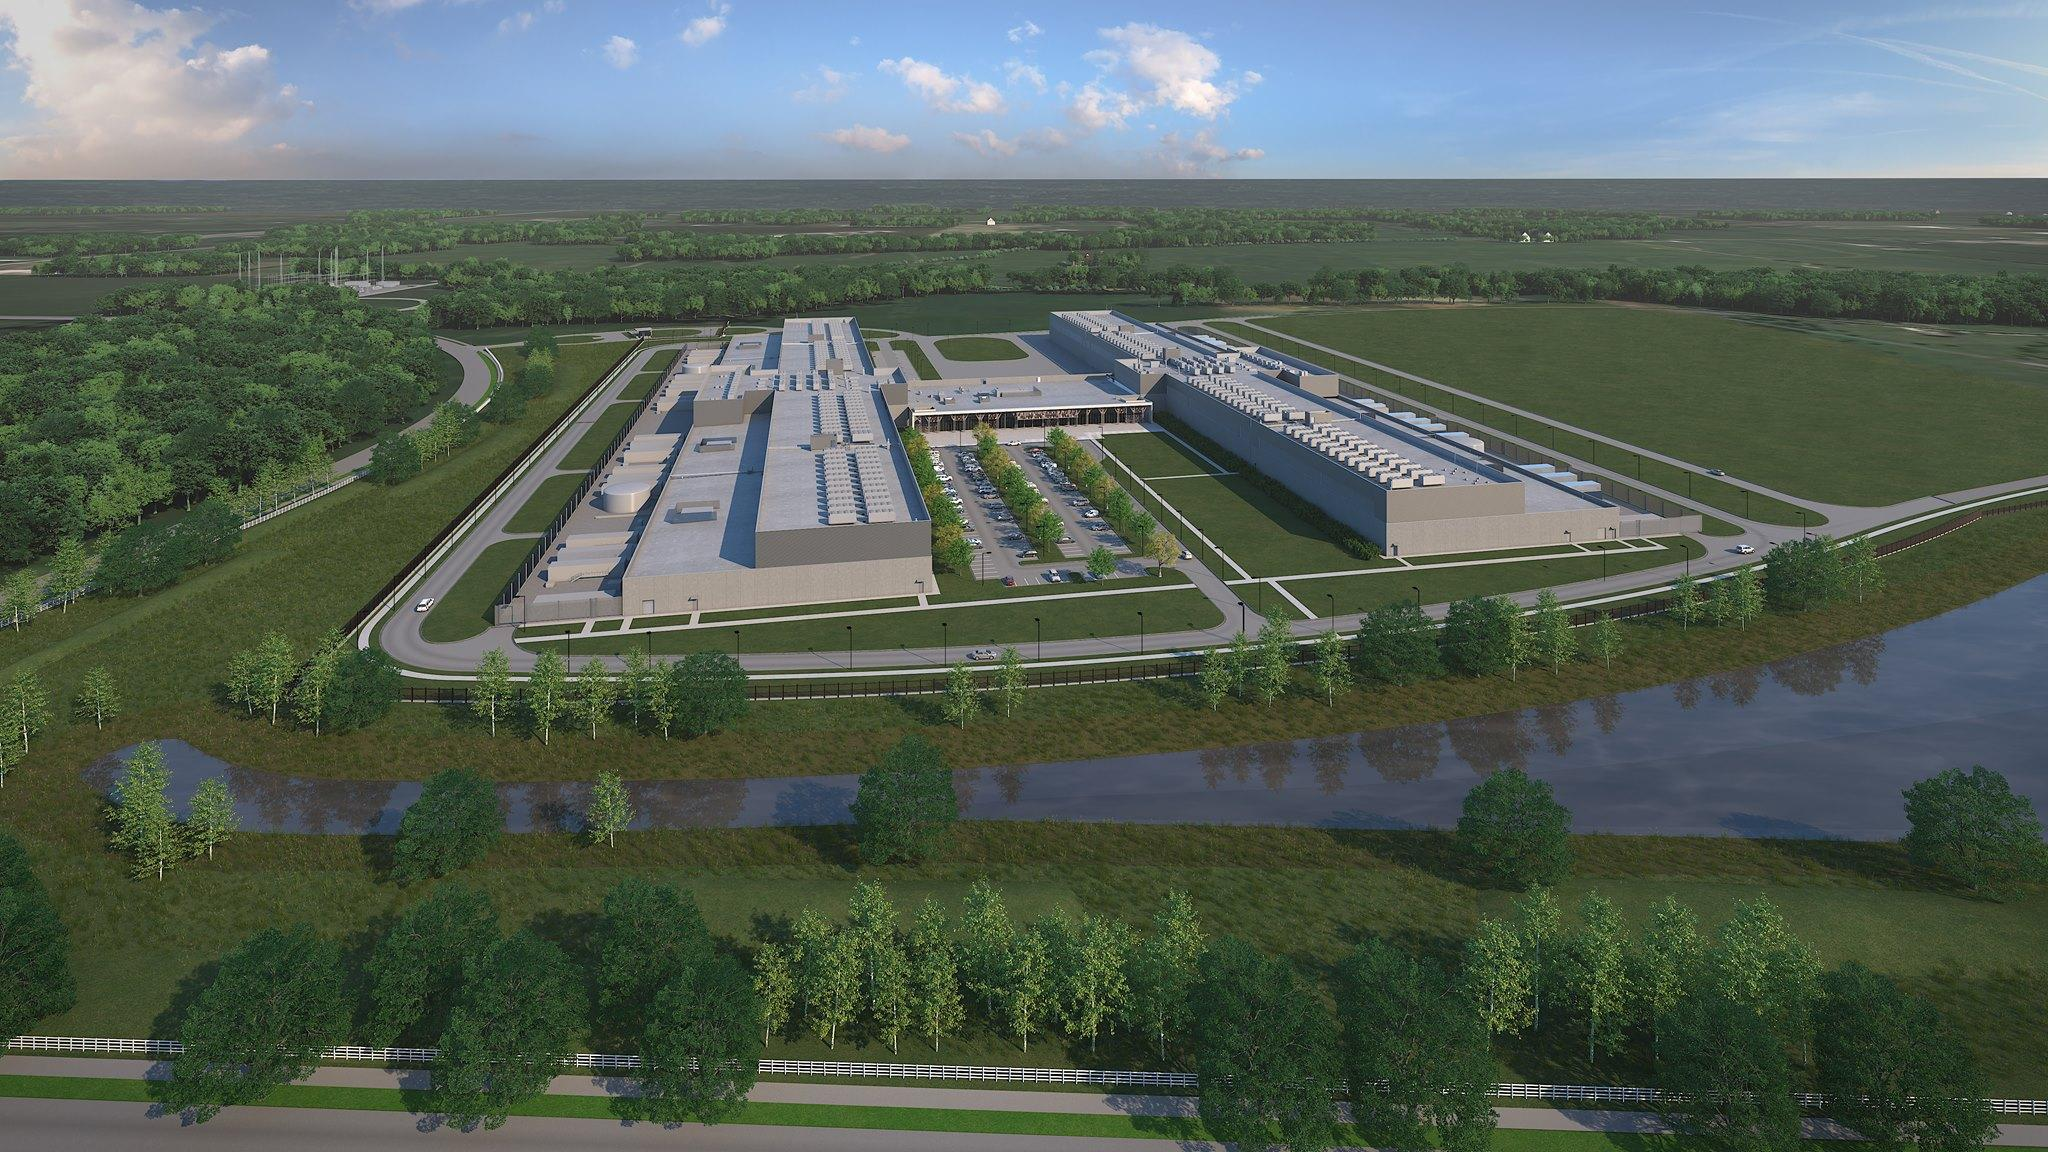 Facebook announces plans for new data center in New Albany